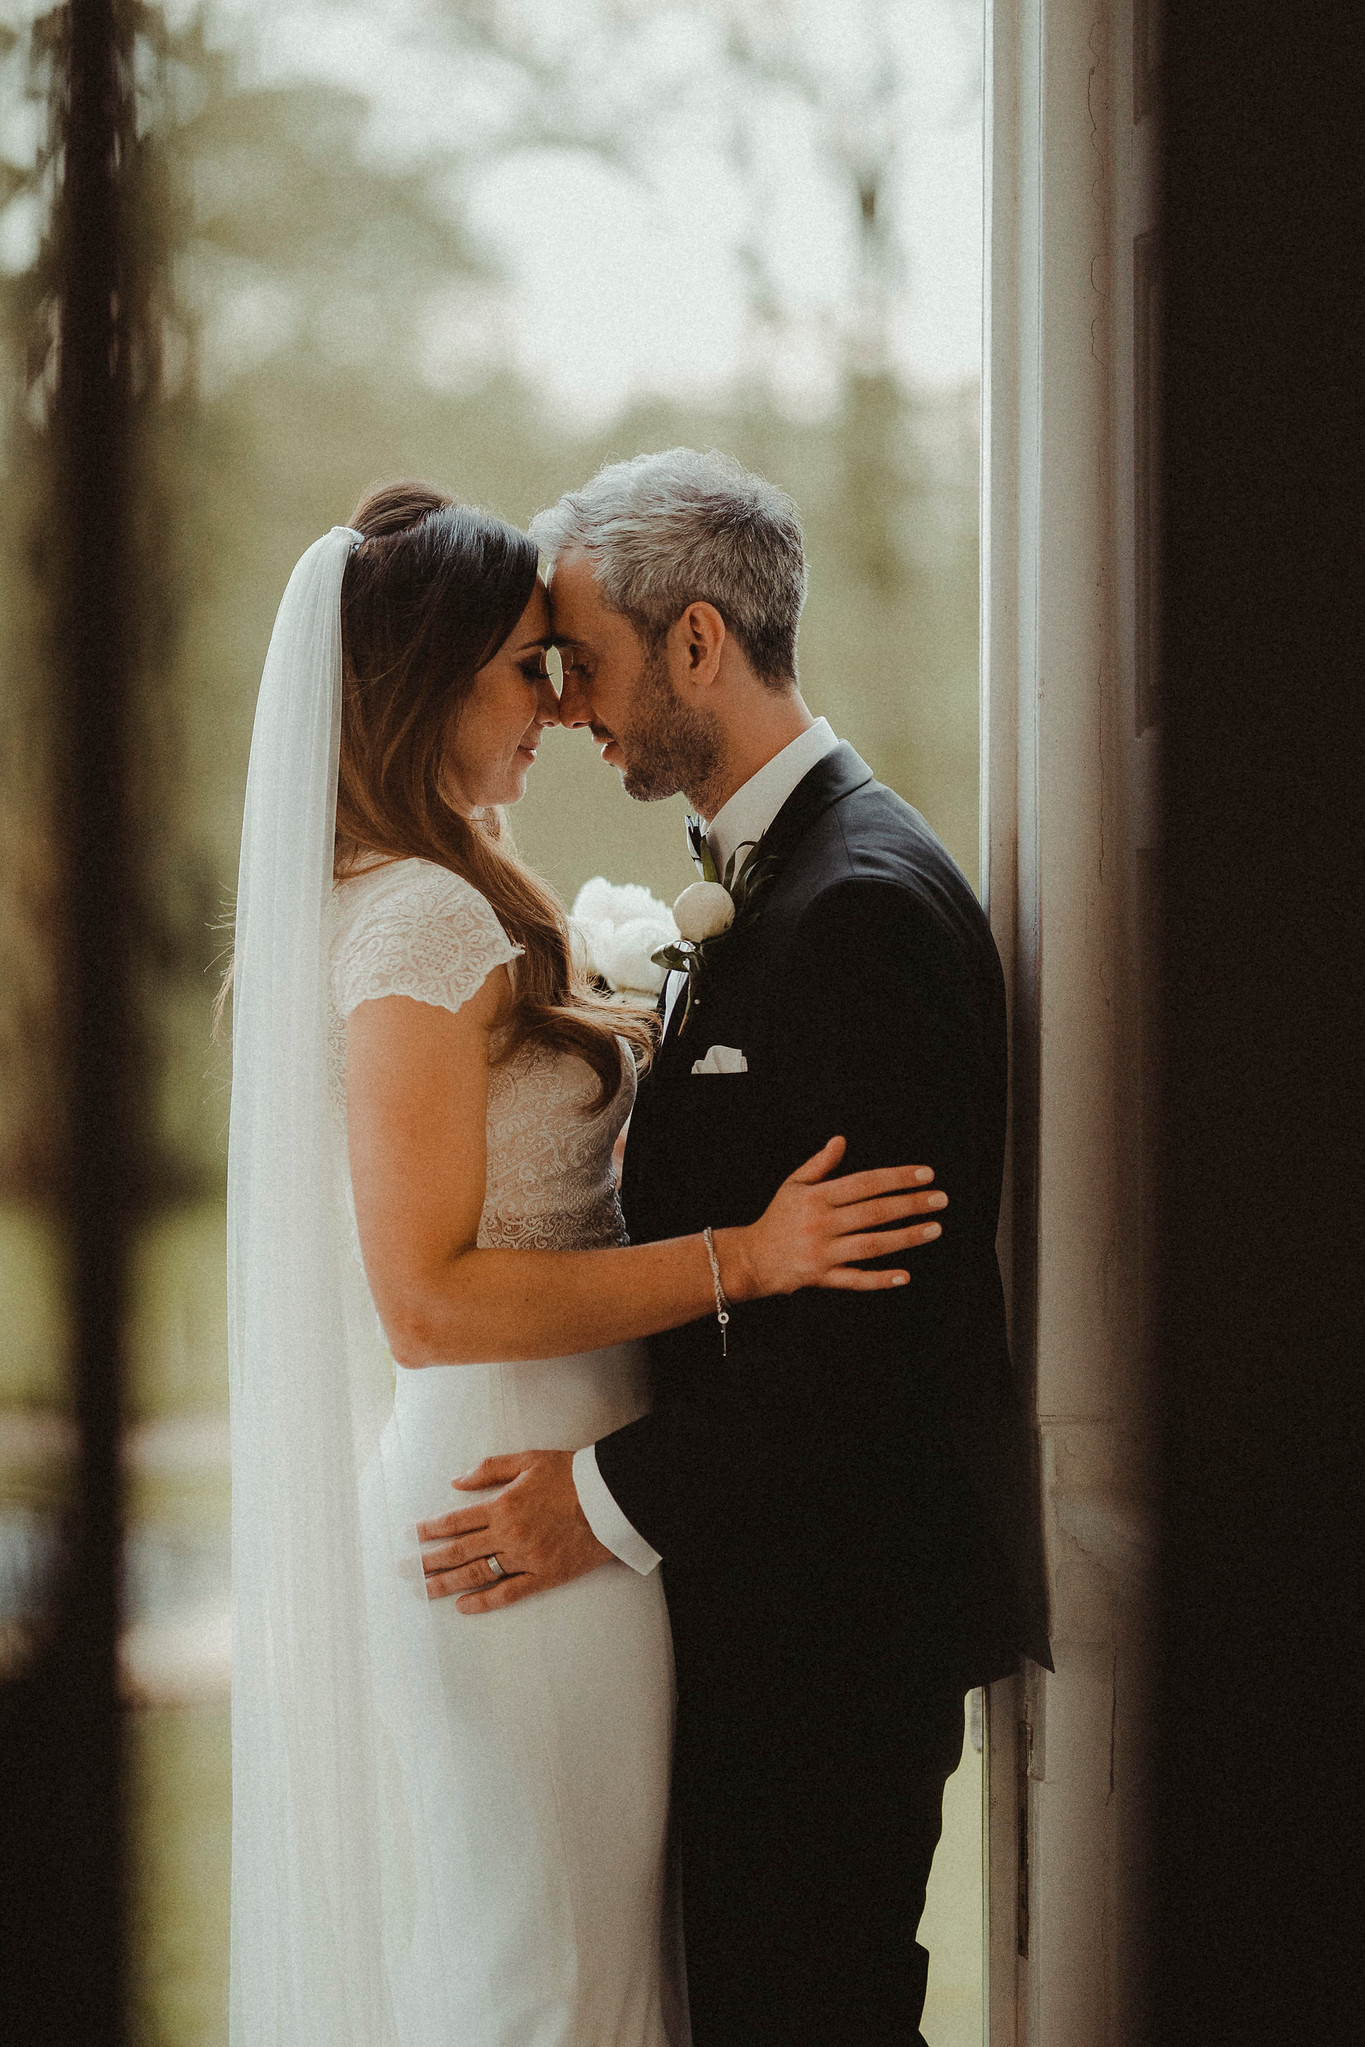 The couple look at each other as they stand in the doorway of their venue. Wedding Pictures